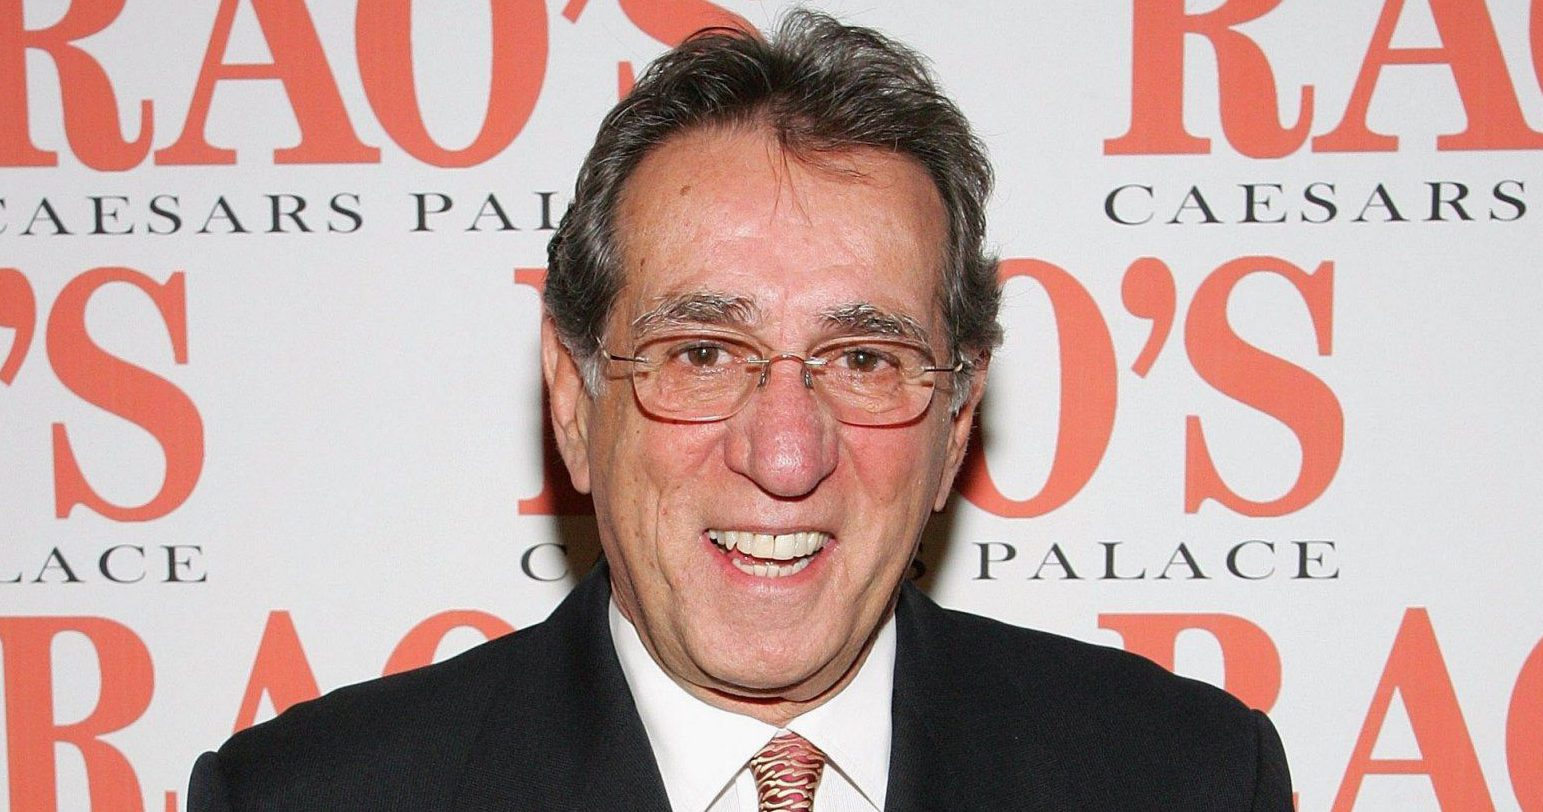 """FILE - JANUARY 31: Actor/restaurateur Frank Pellegrino, known for his work on """"The Sopranos"""" and """"Goodfellas"""", has passed away following a battle with lung cancer. He was 72 years old. LAS VEGAS - JANUARY 11: Rao's co-owner Frank Pellegrino Sr. arrives at the grand opening party for Rao's at Caesars Palace January 11, 2007 in Las Vegas, Nevada. (Photo by Ethan Miller/Getty Images for Caesars)"""